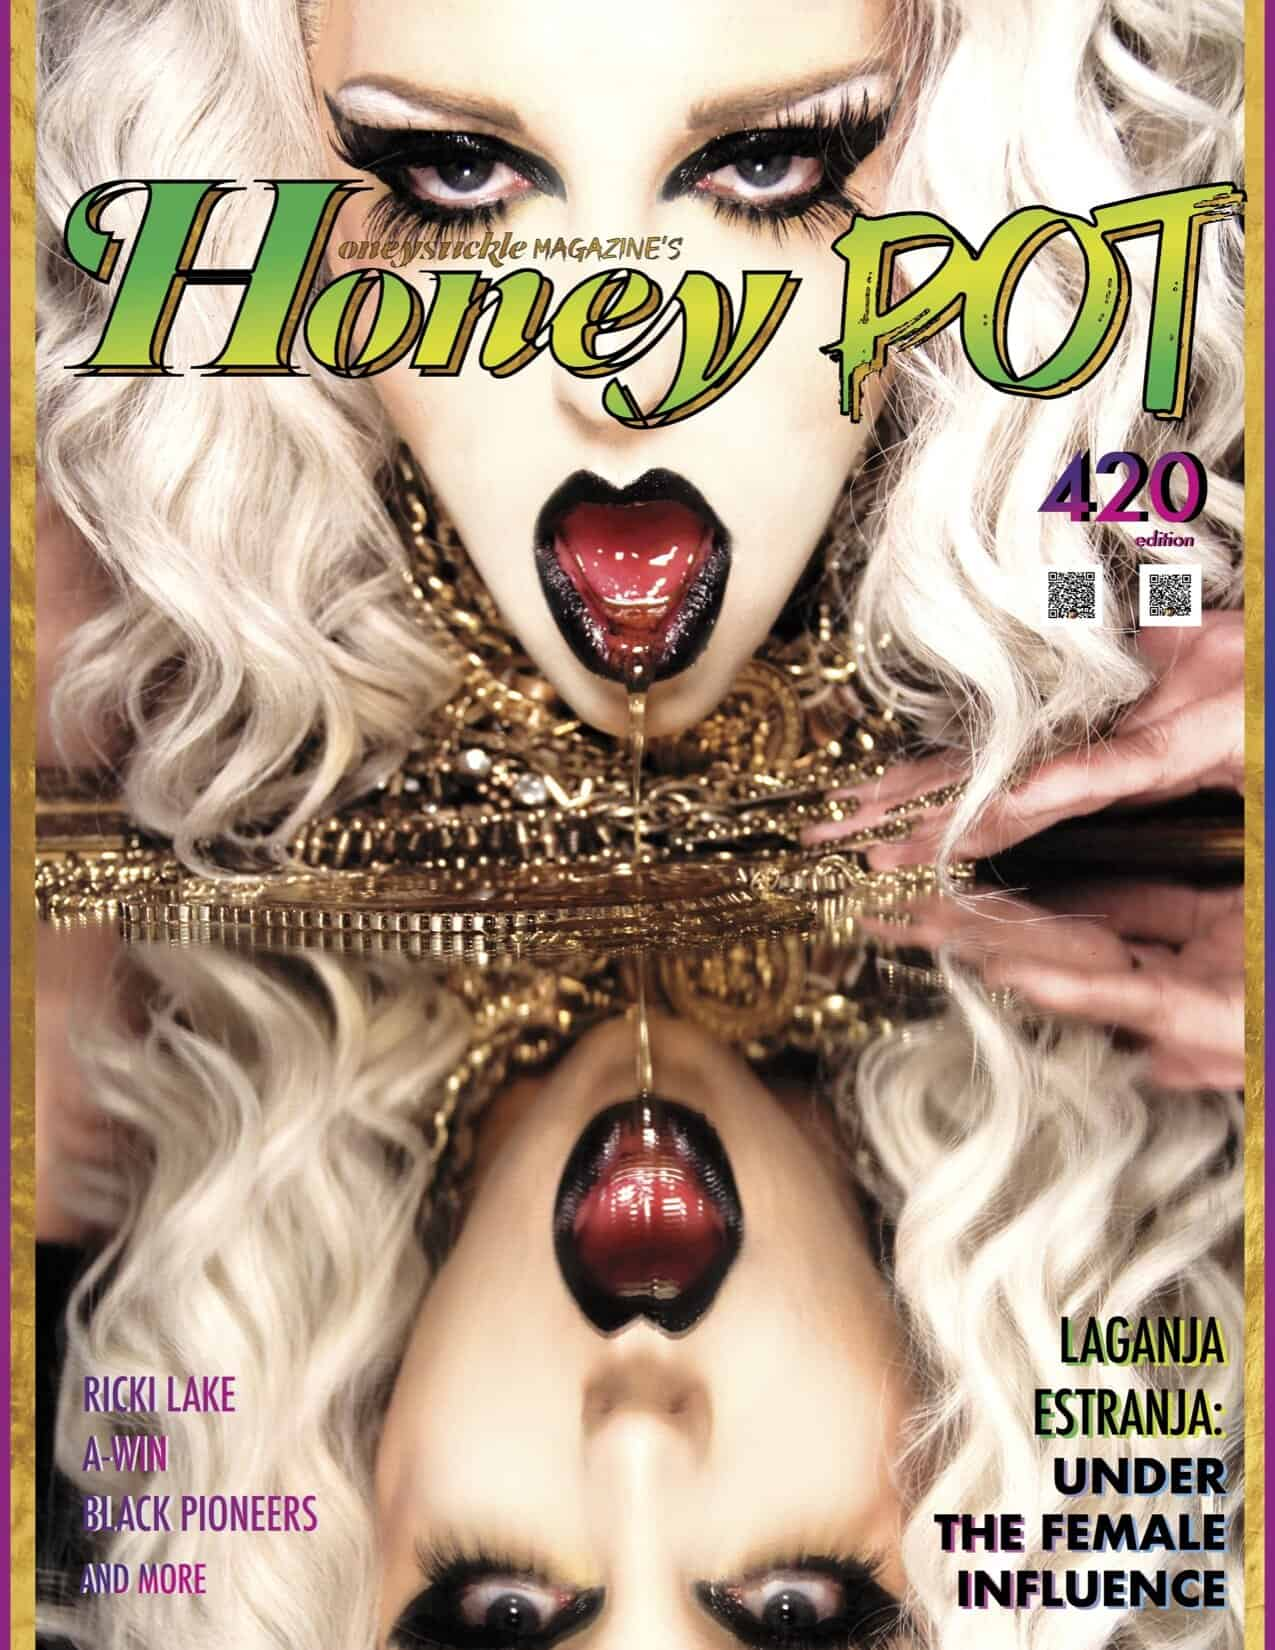 New Issue Drop - 420!